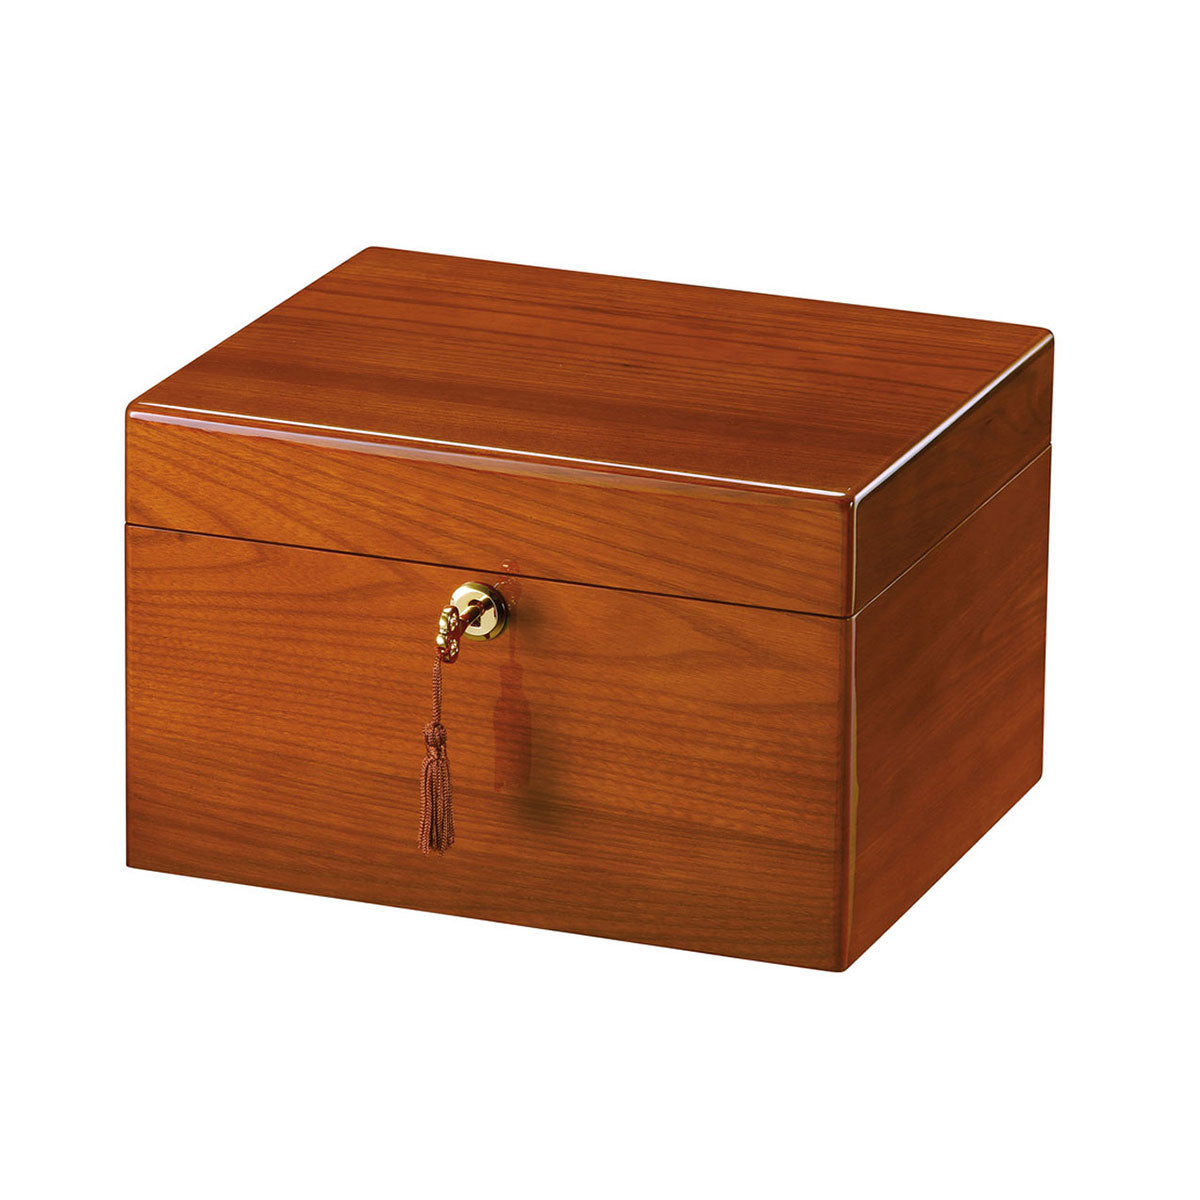 Devotion II - Oak Chest Urn